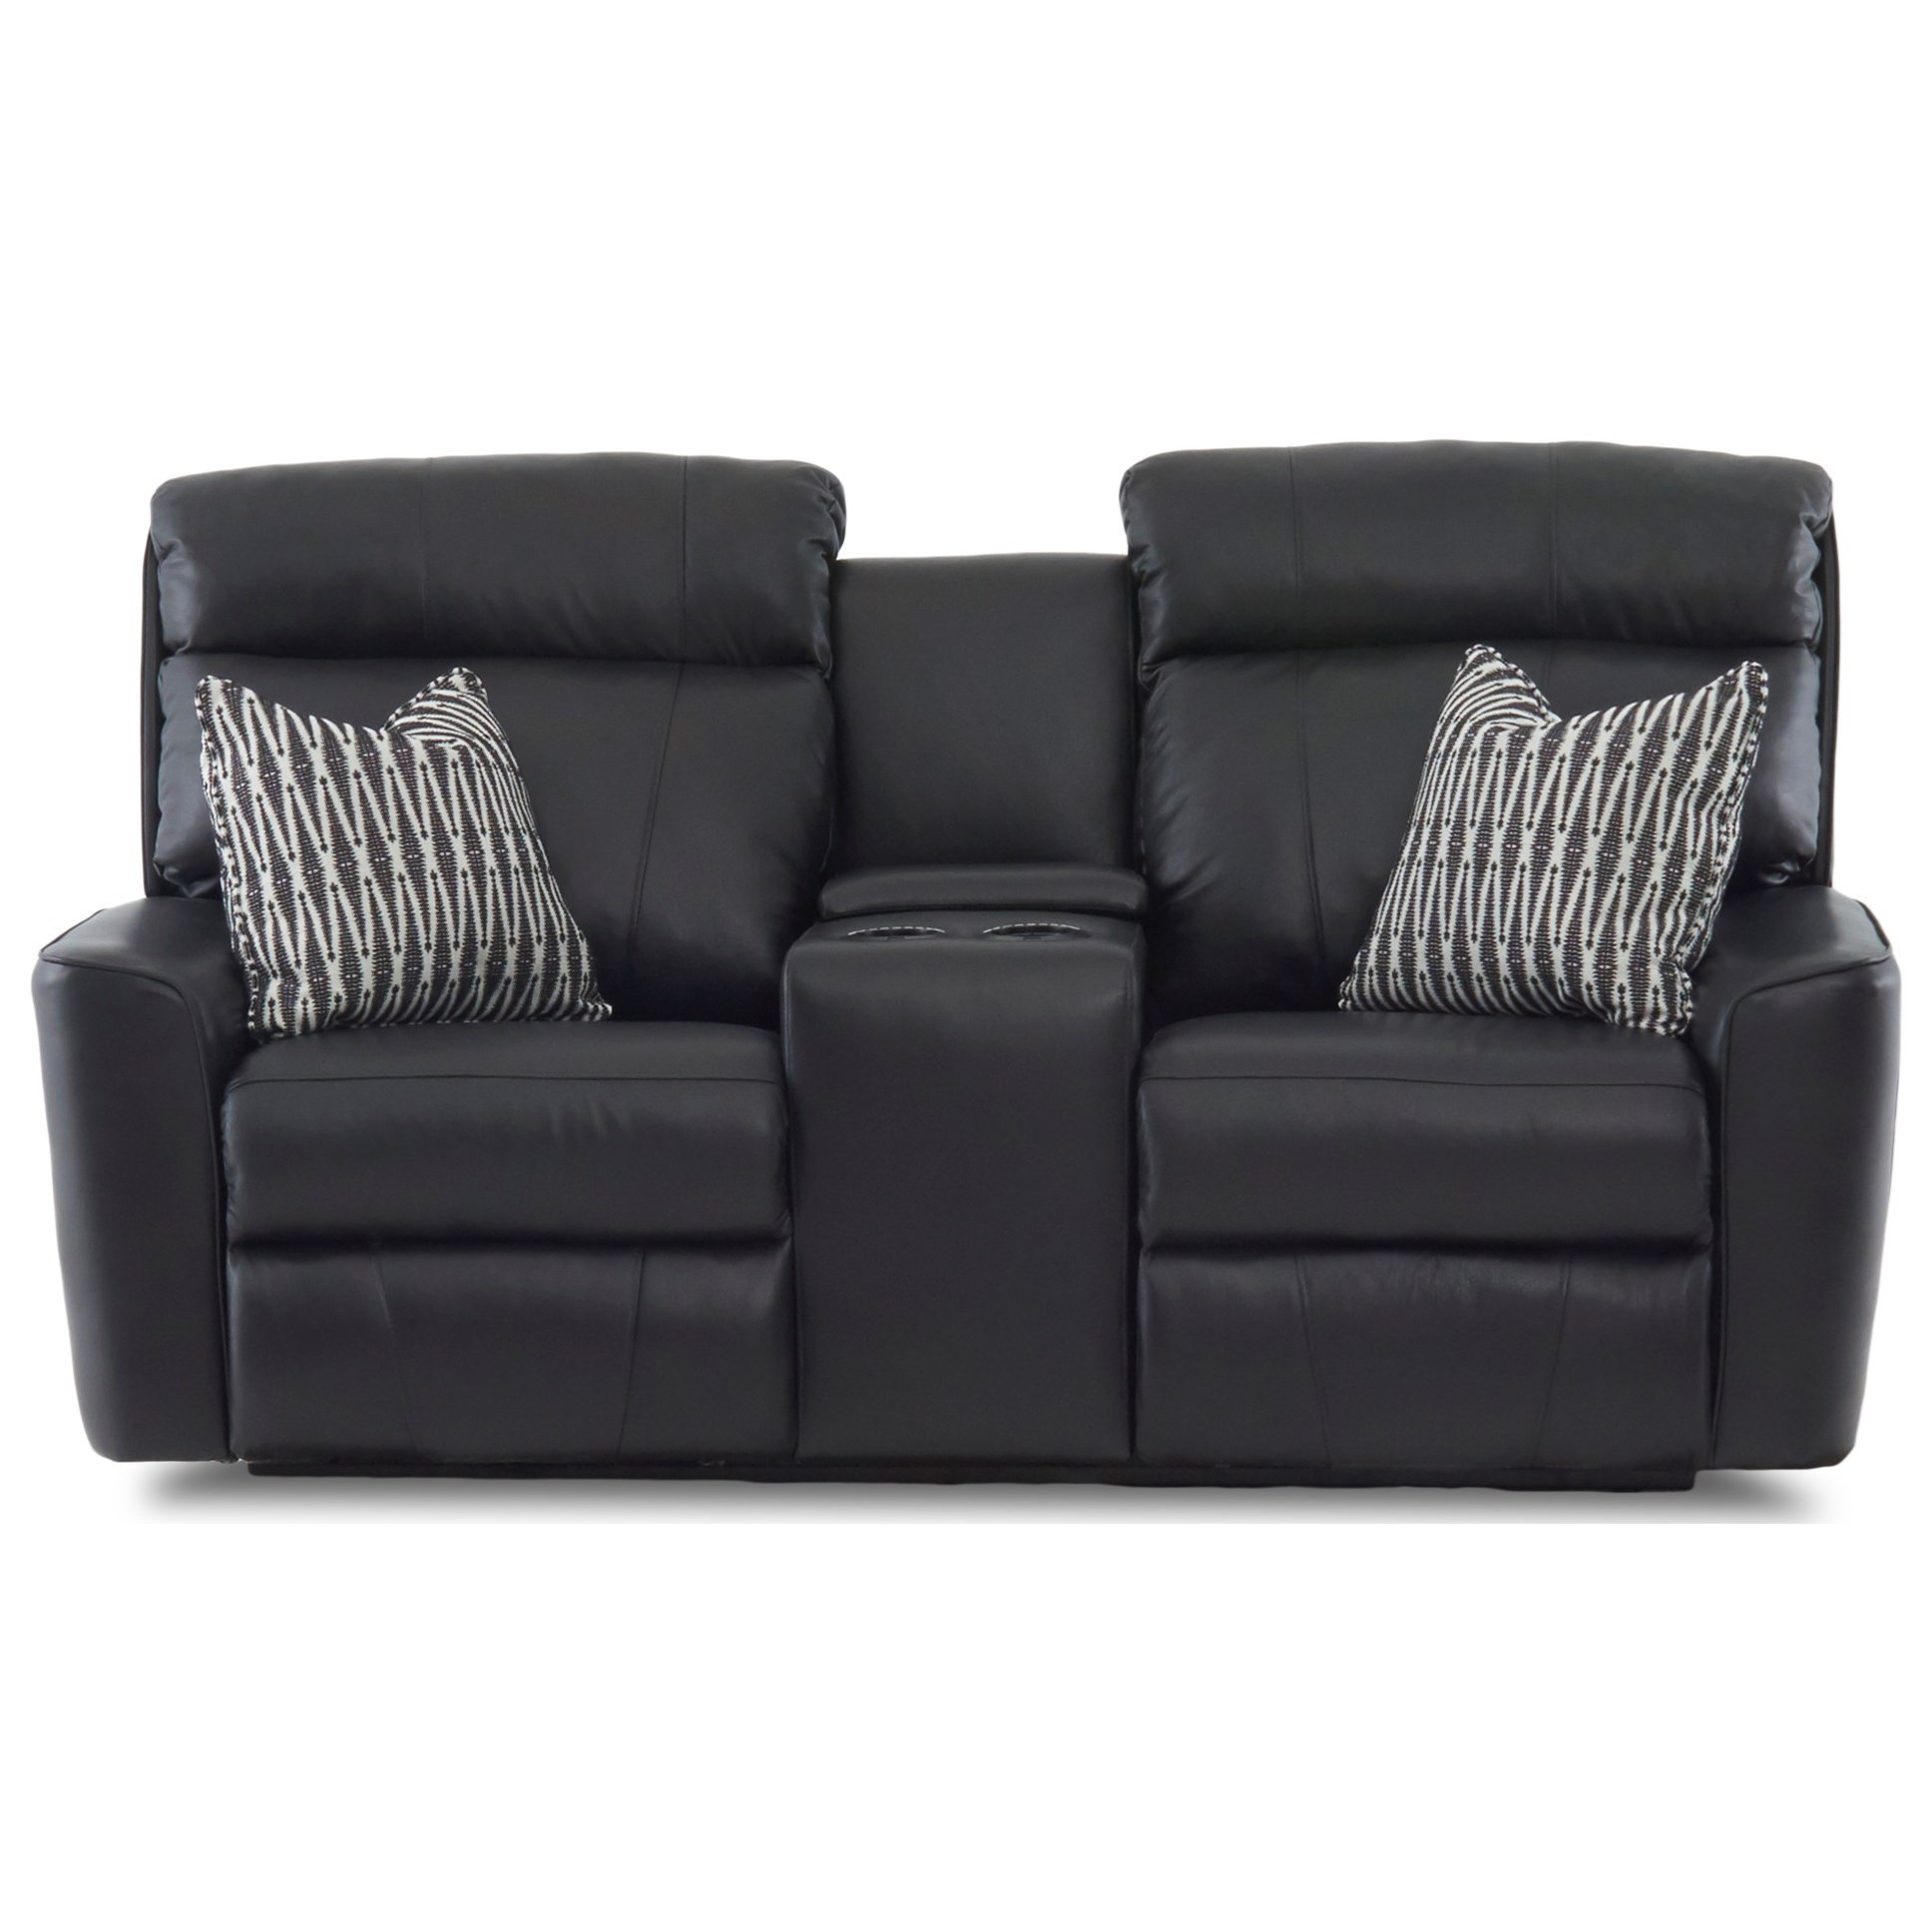 Klaussner ElaraConsole Reclining Loveseat W Pillows Recliner With Cup Holder And Storage H99